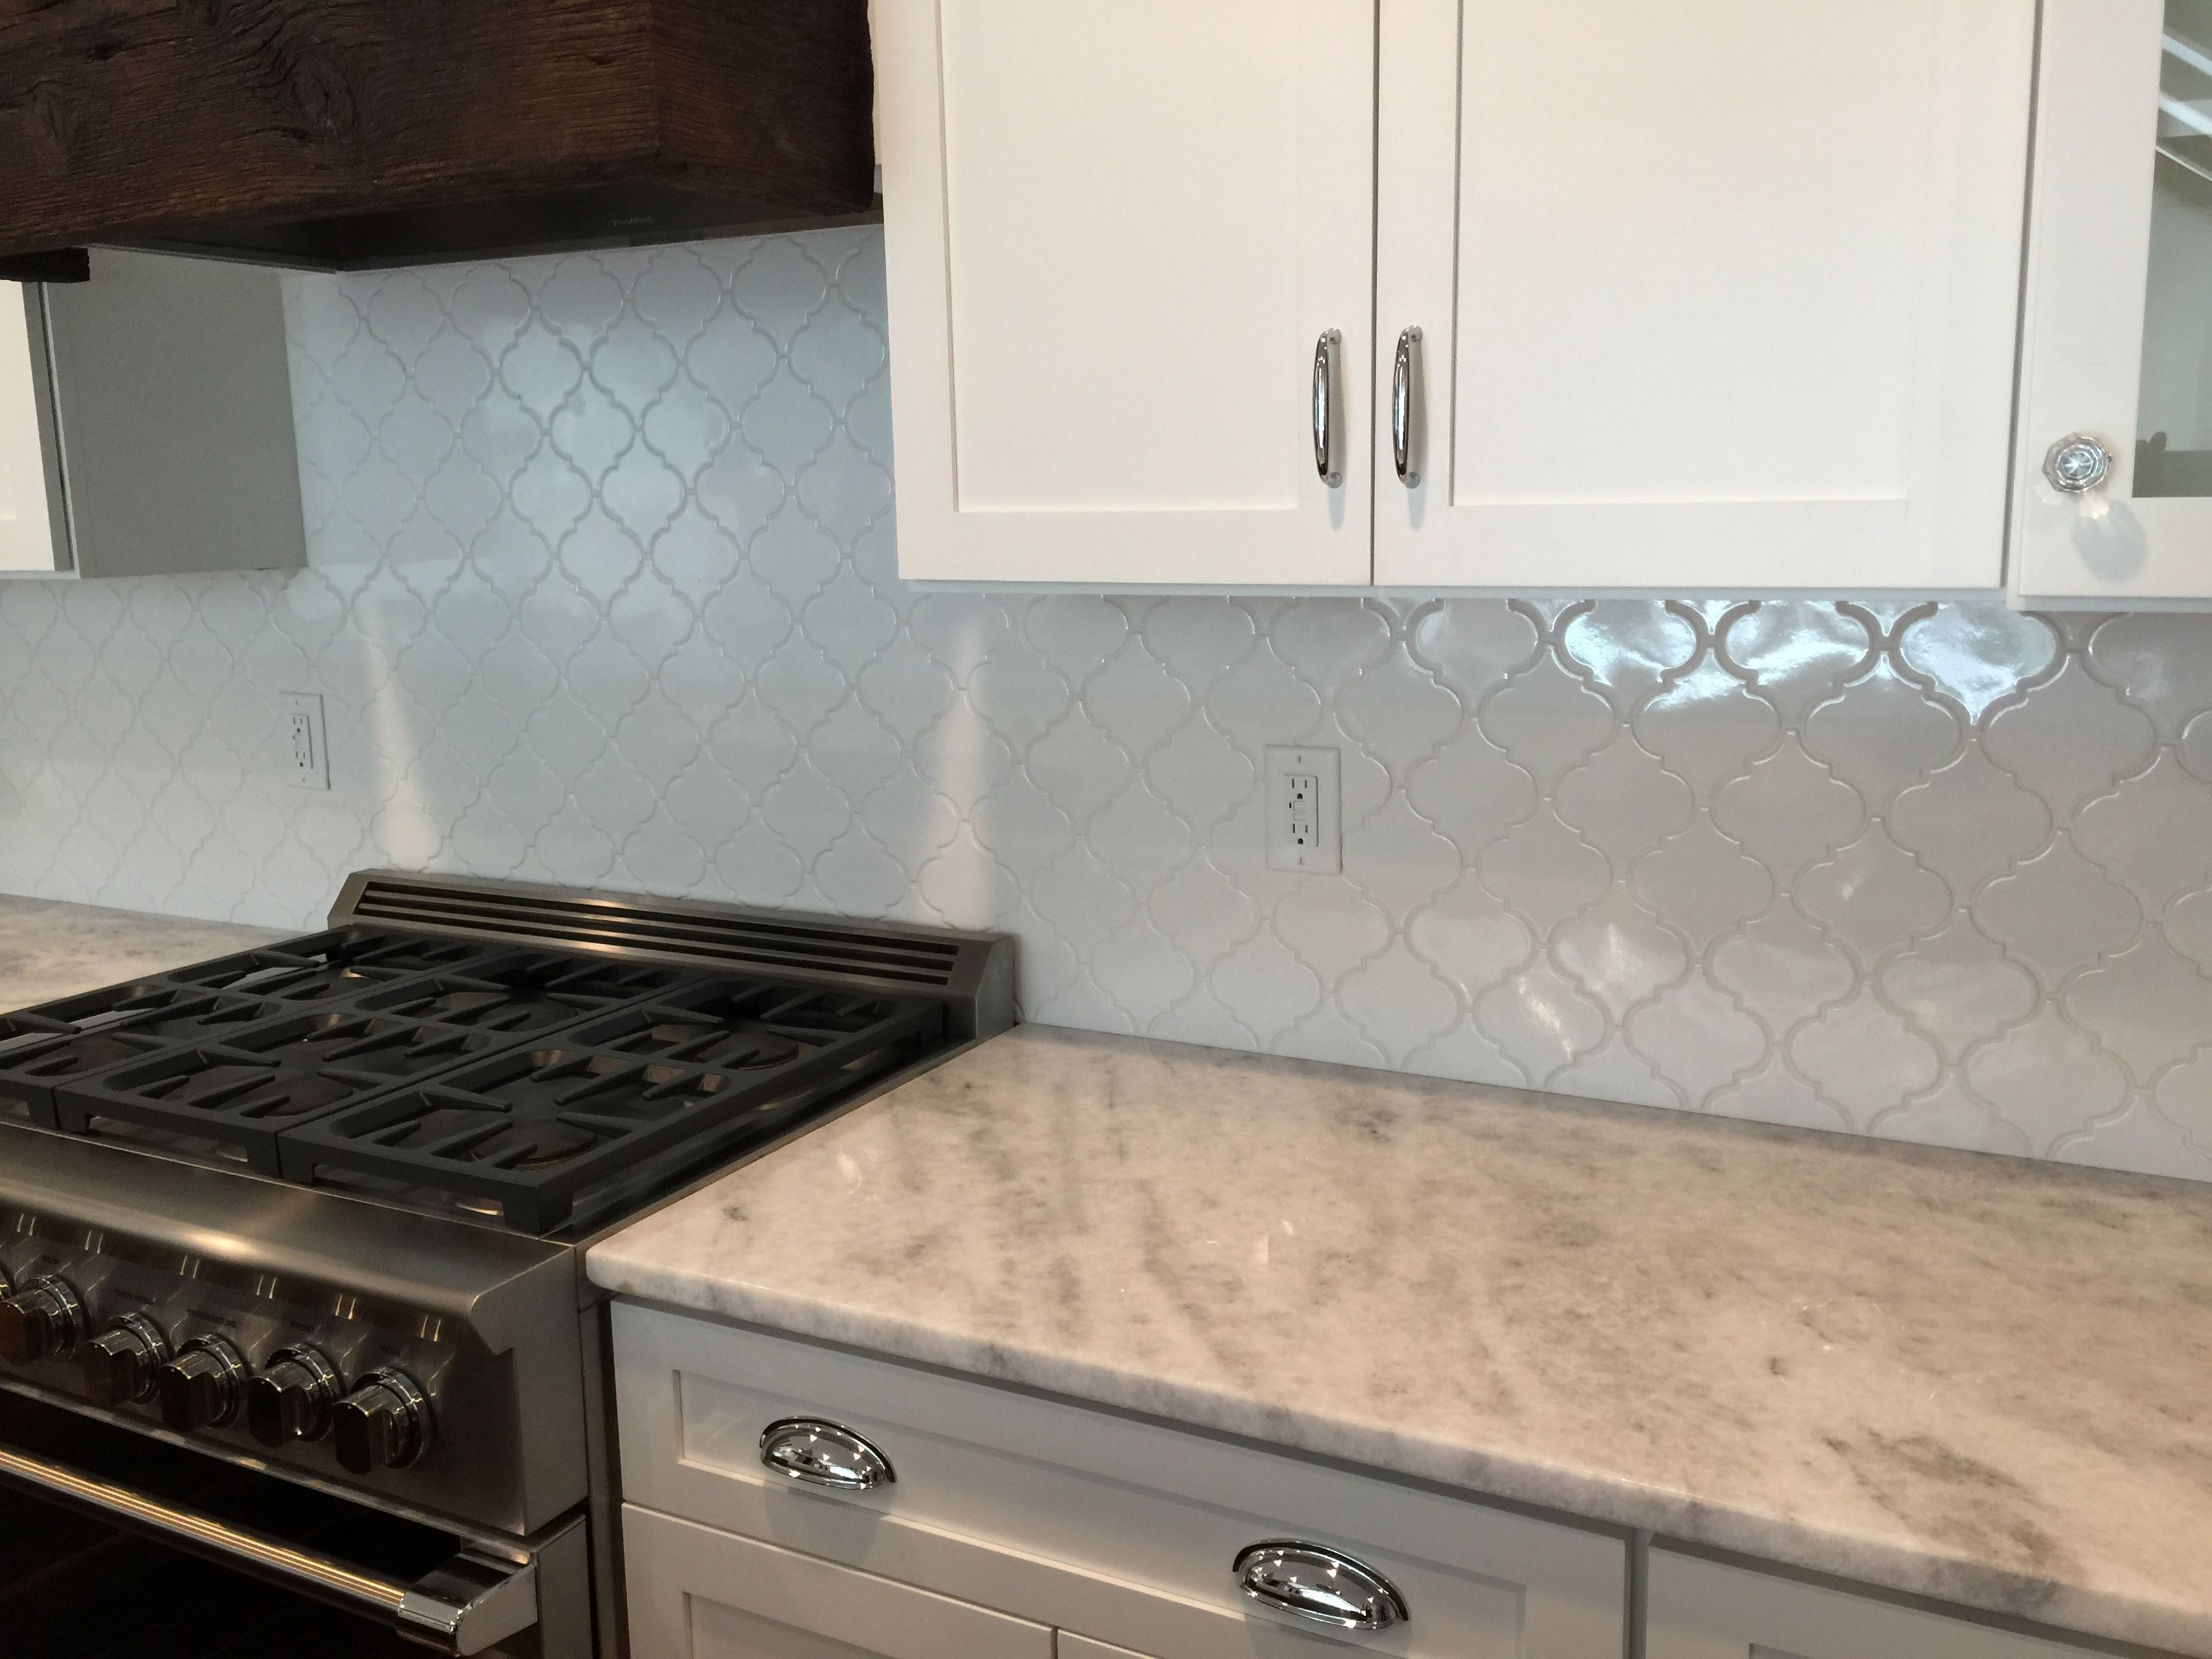 Kitchen backsplash in a classic white arabesque patterned for Classic kitchen floor tile